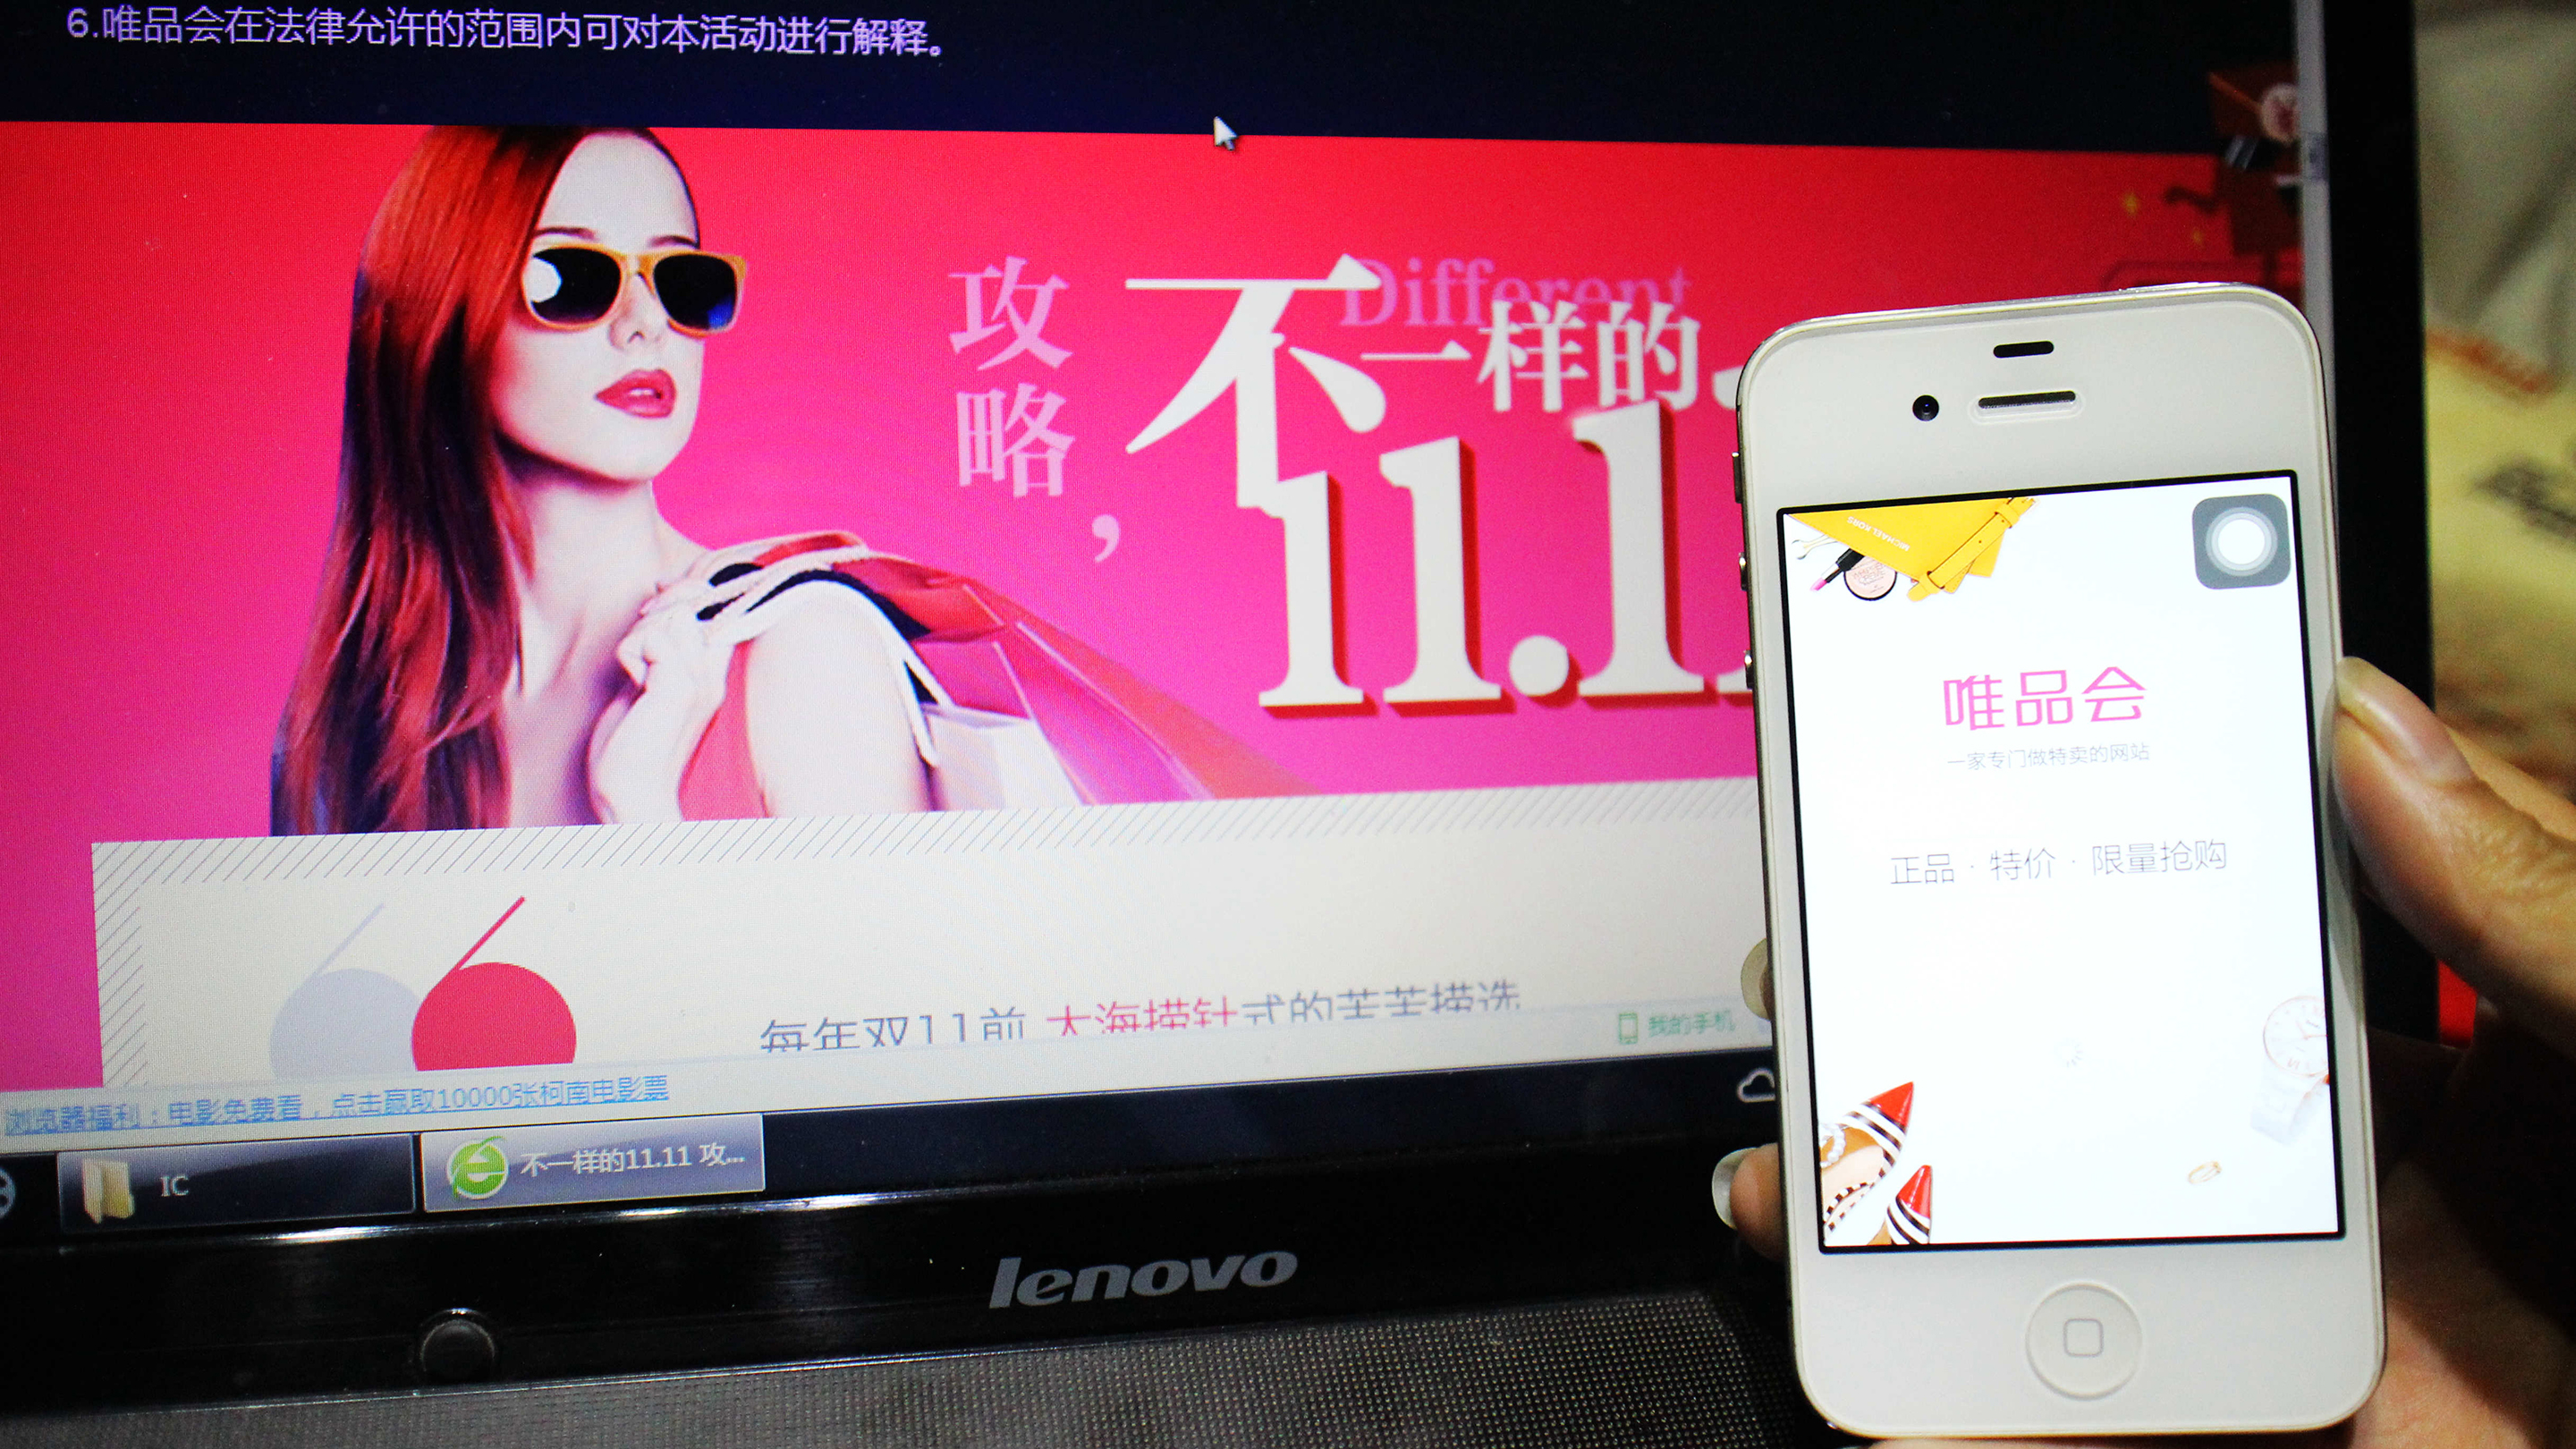 Hedge funds focus on Vipshop in shift away from China e-commerce